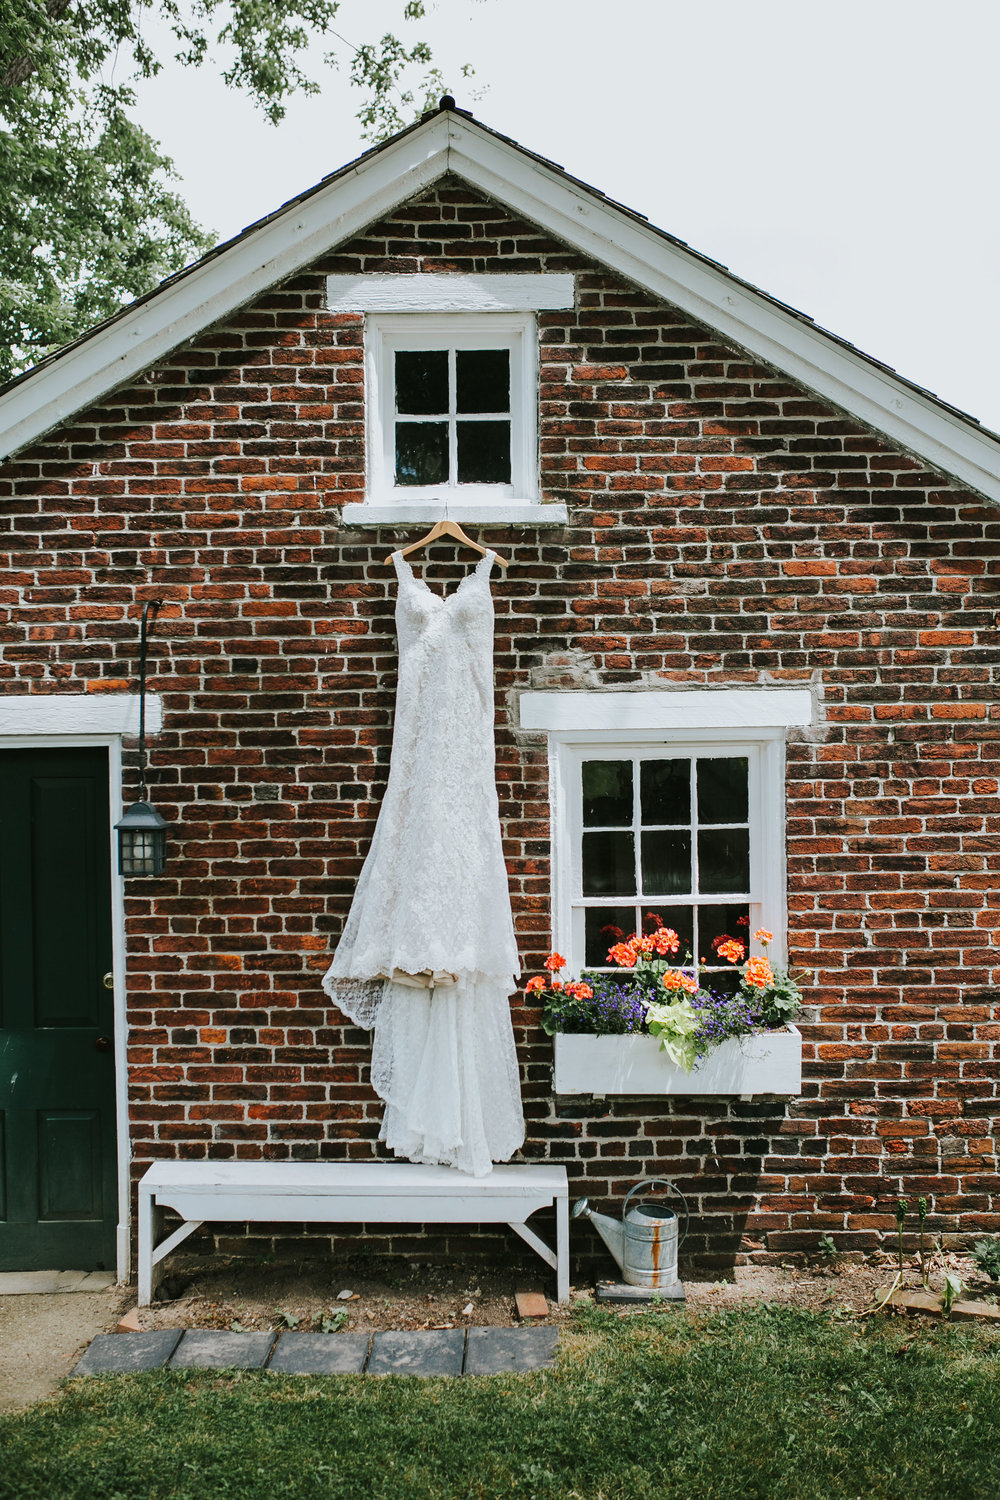 West Overton Wedding5.jpg